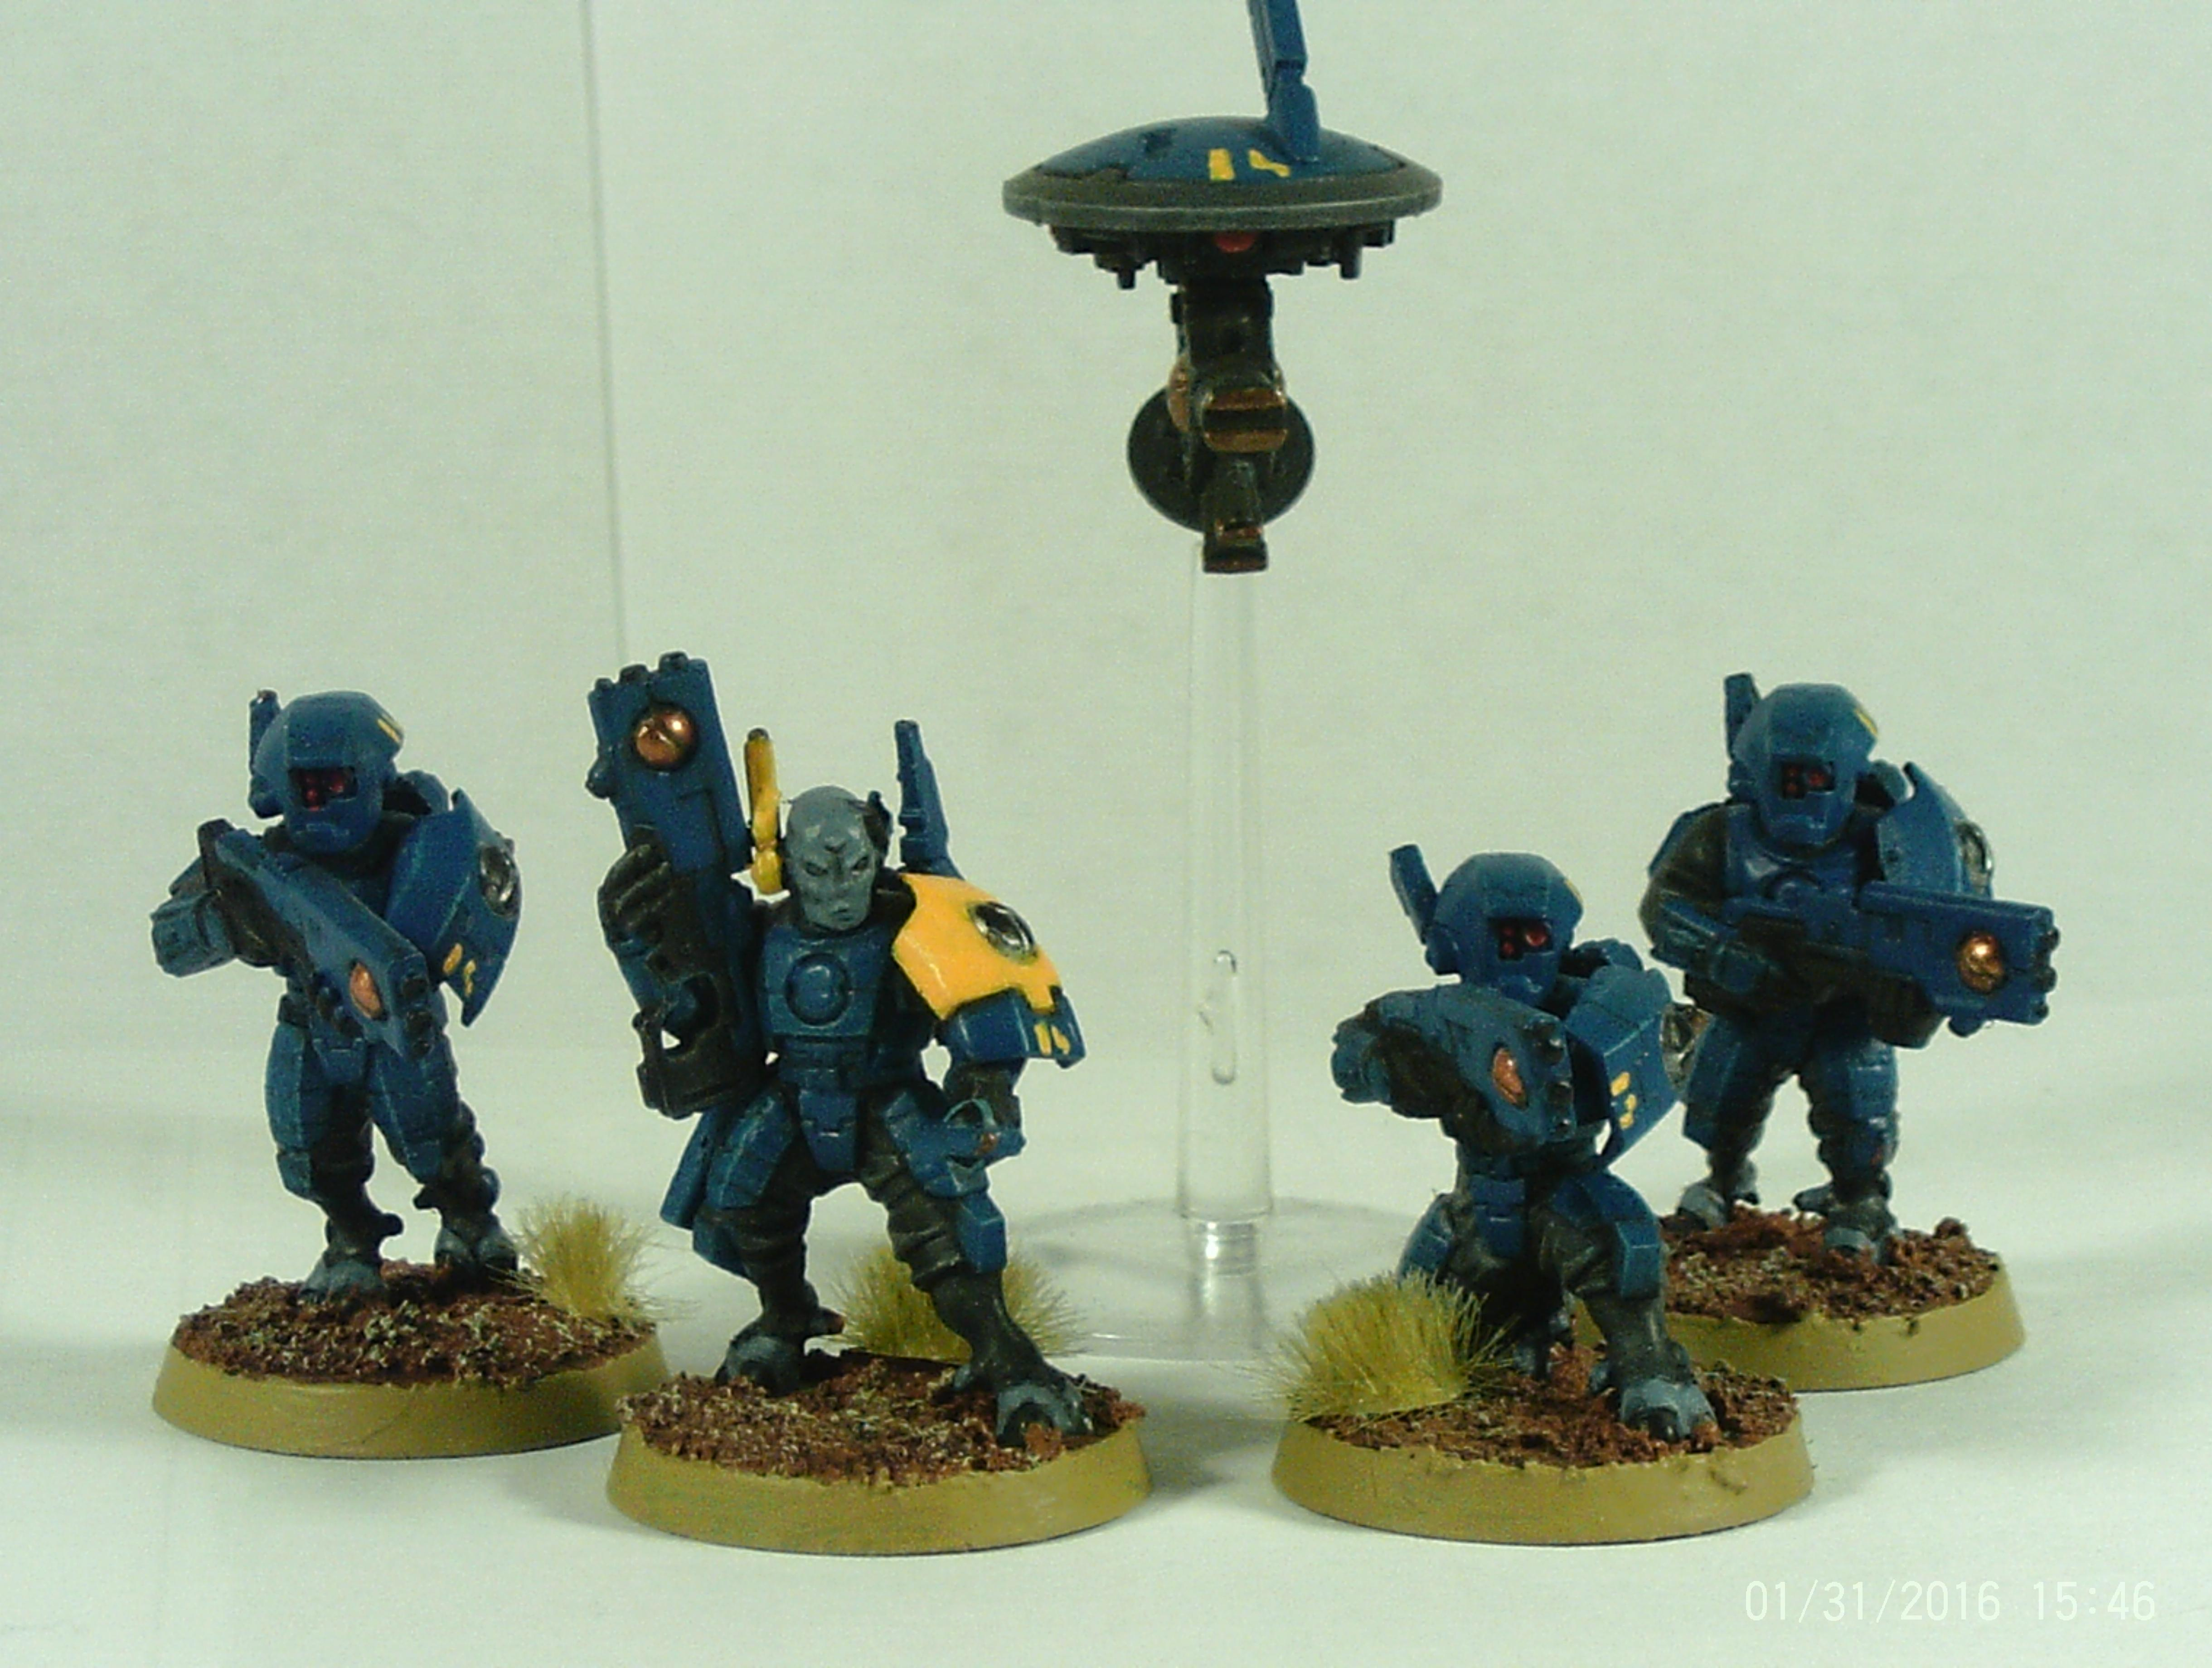 Blaster, Breachers, Fire, Pulse, Tau, Troops, Warhammer 40,000, Warhammer Fantasy, Warriors